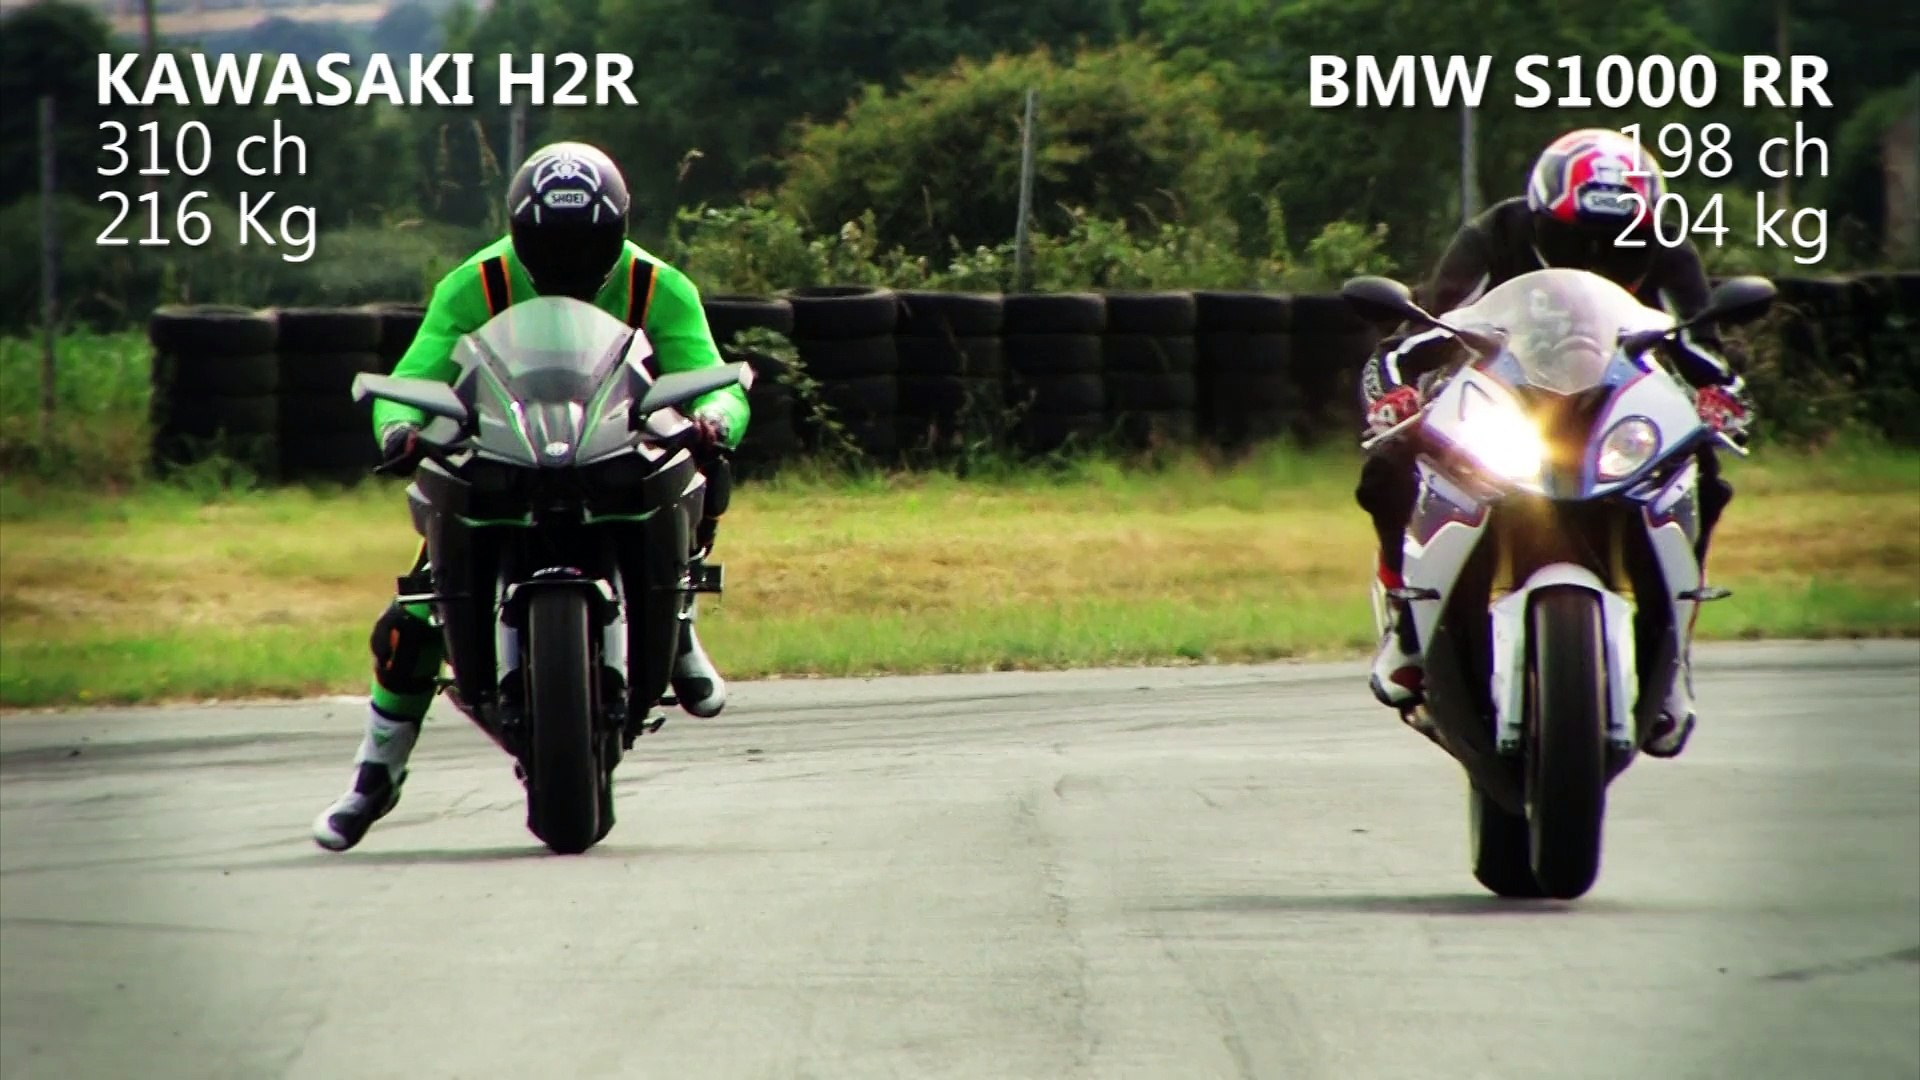 Test D Acceleration Kawasaki H2r Vs Bmw S1000rr Video Dailymotion